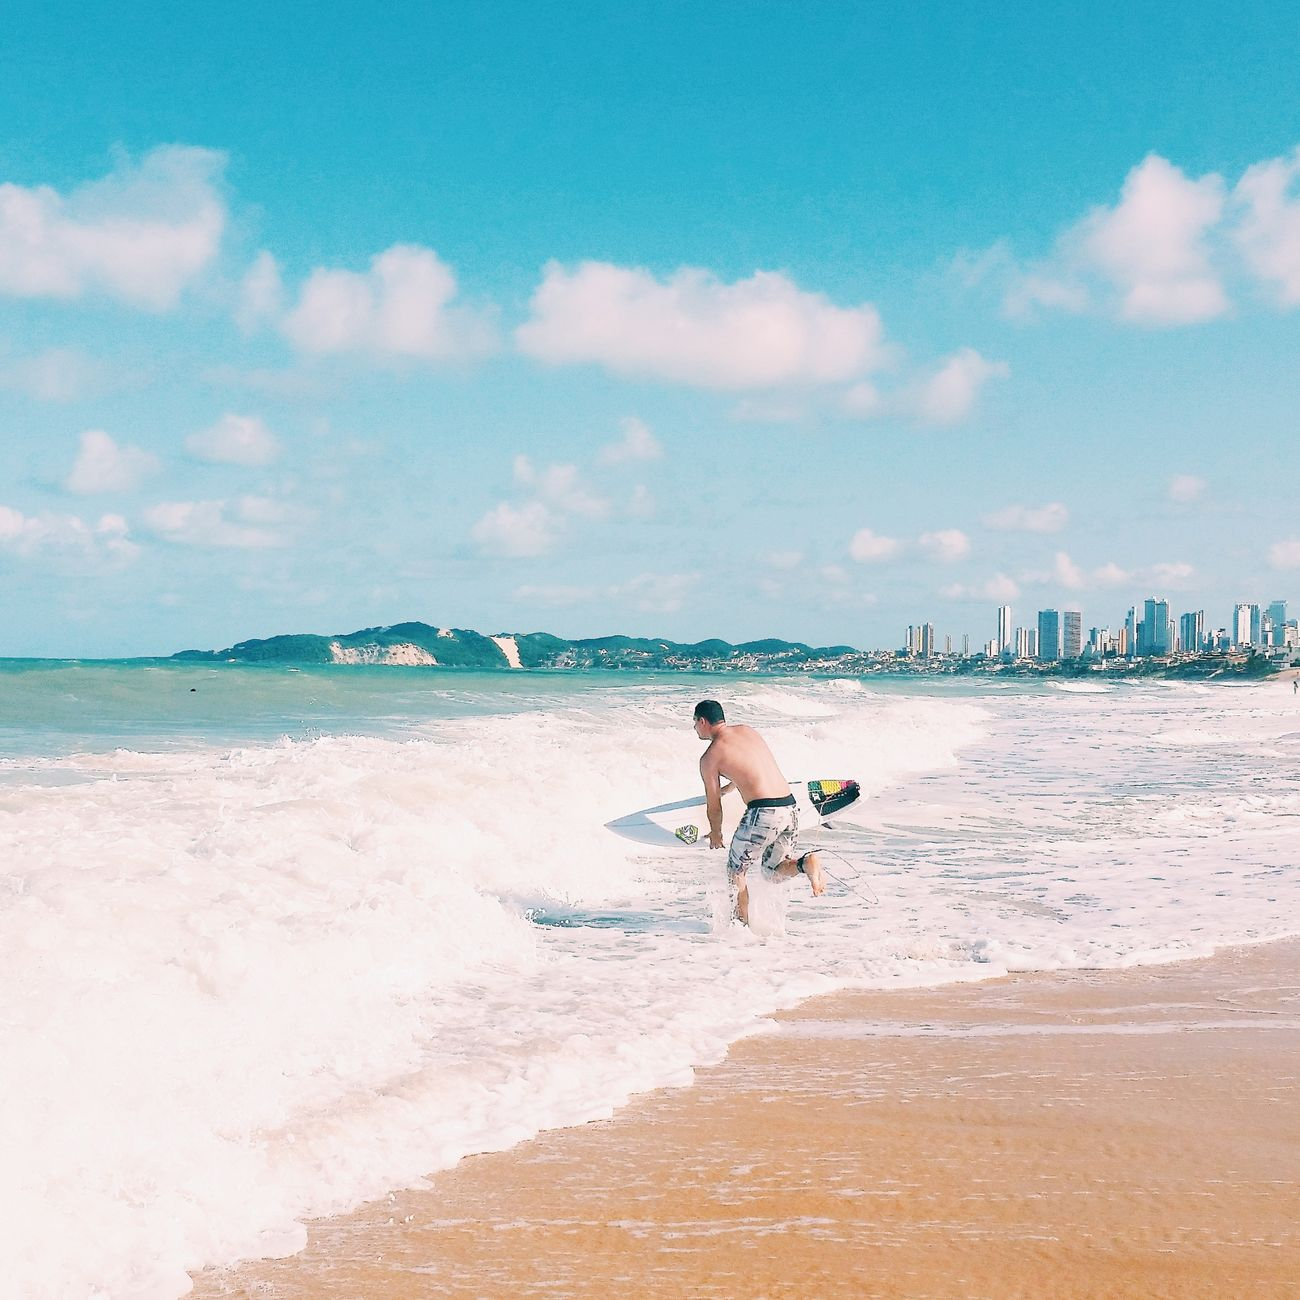 Entrando na onda 🌊 First Eyeem Photo Showcase April The KIOMI Collection Natal RioGrandeDoNorte RN Brasil Sea Beach Surf